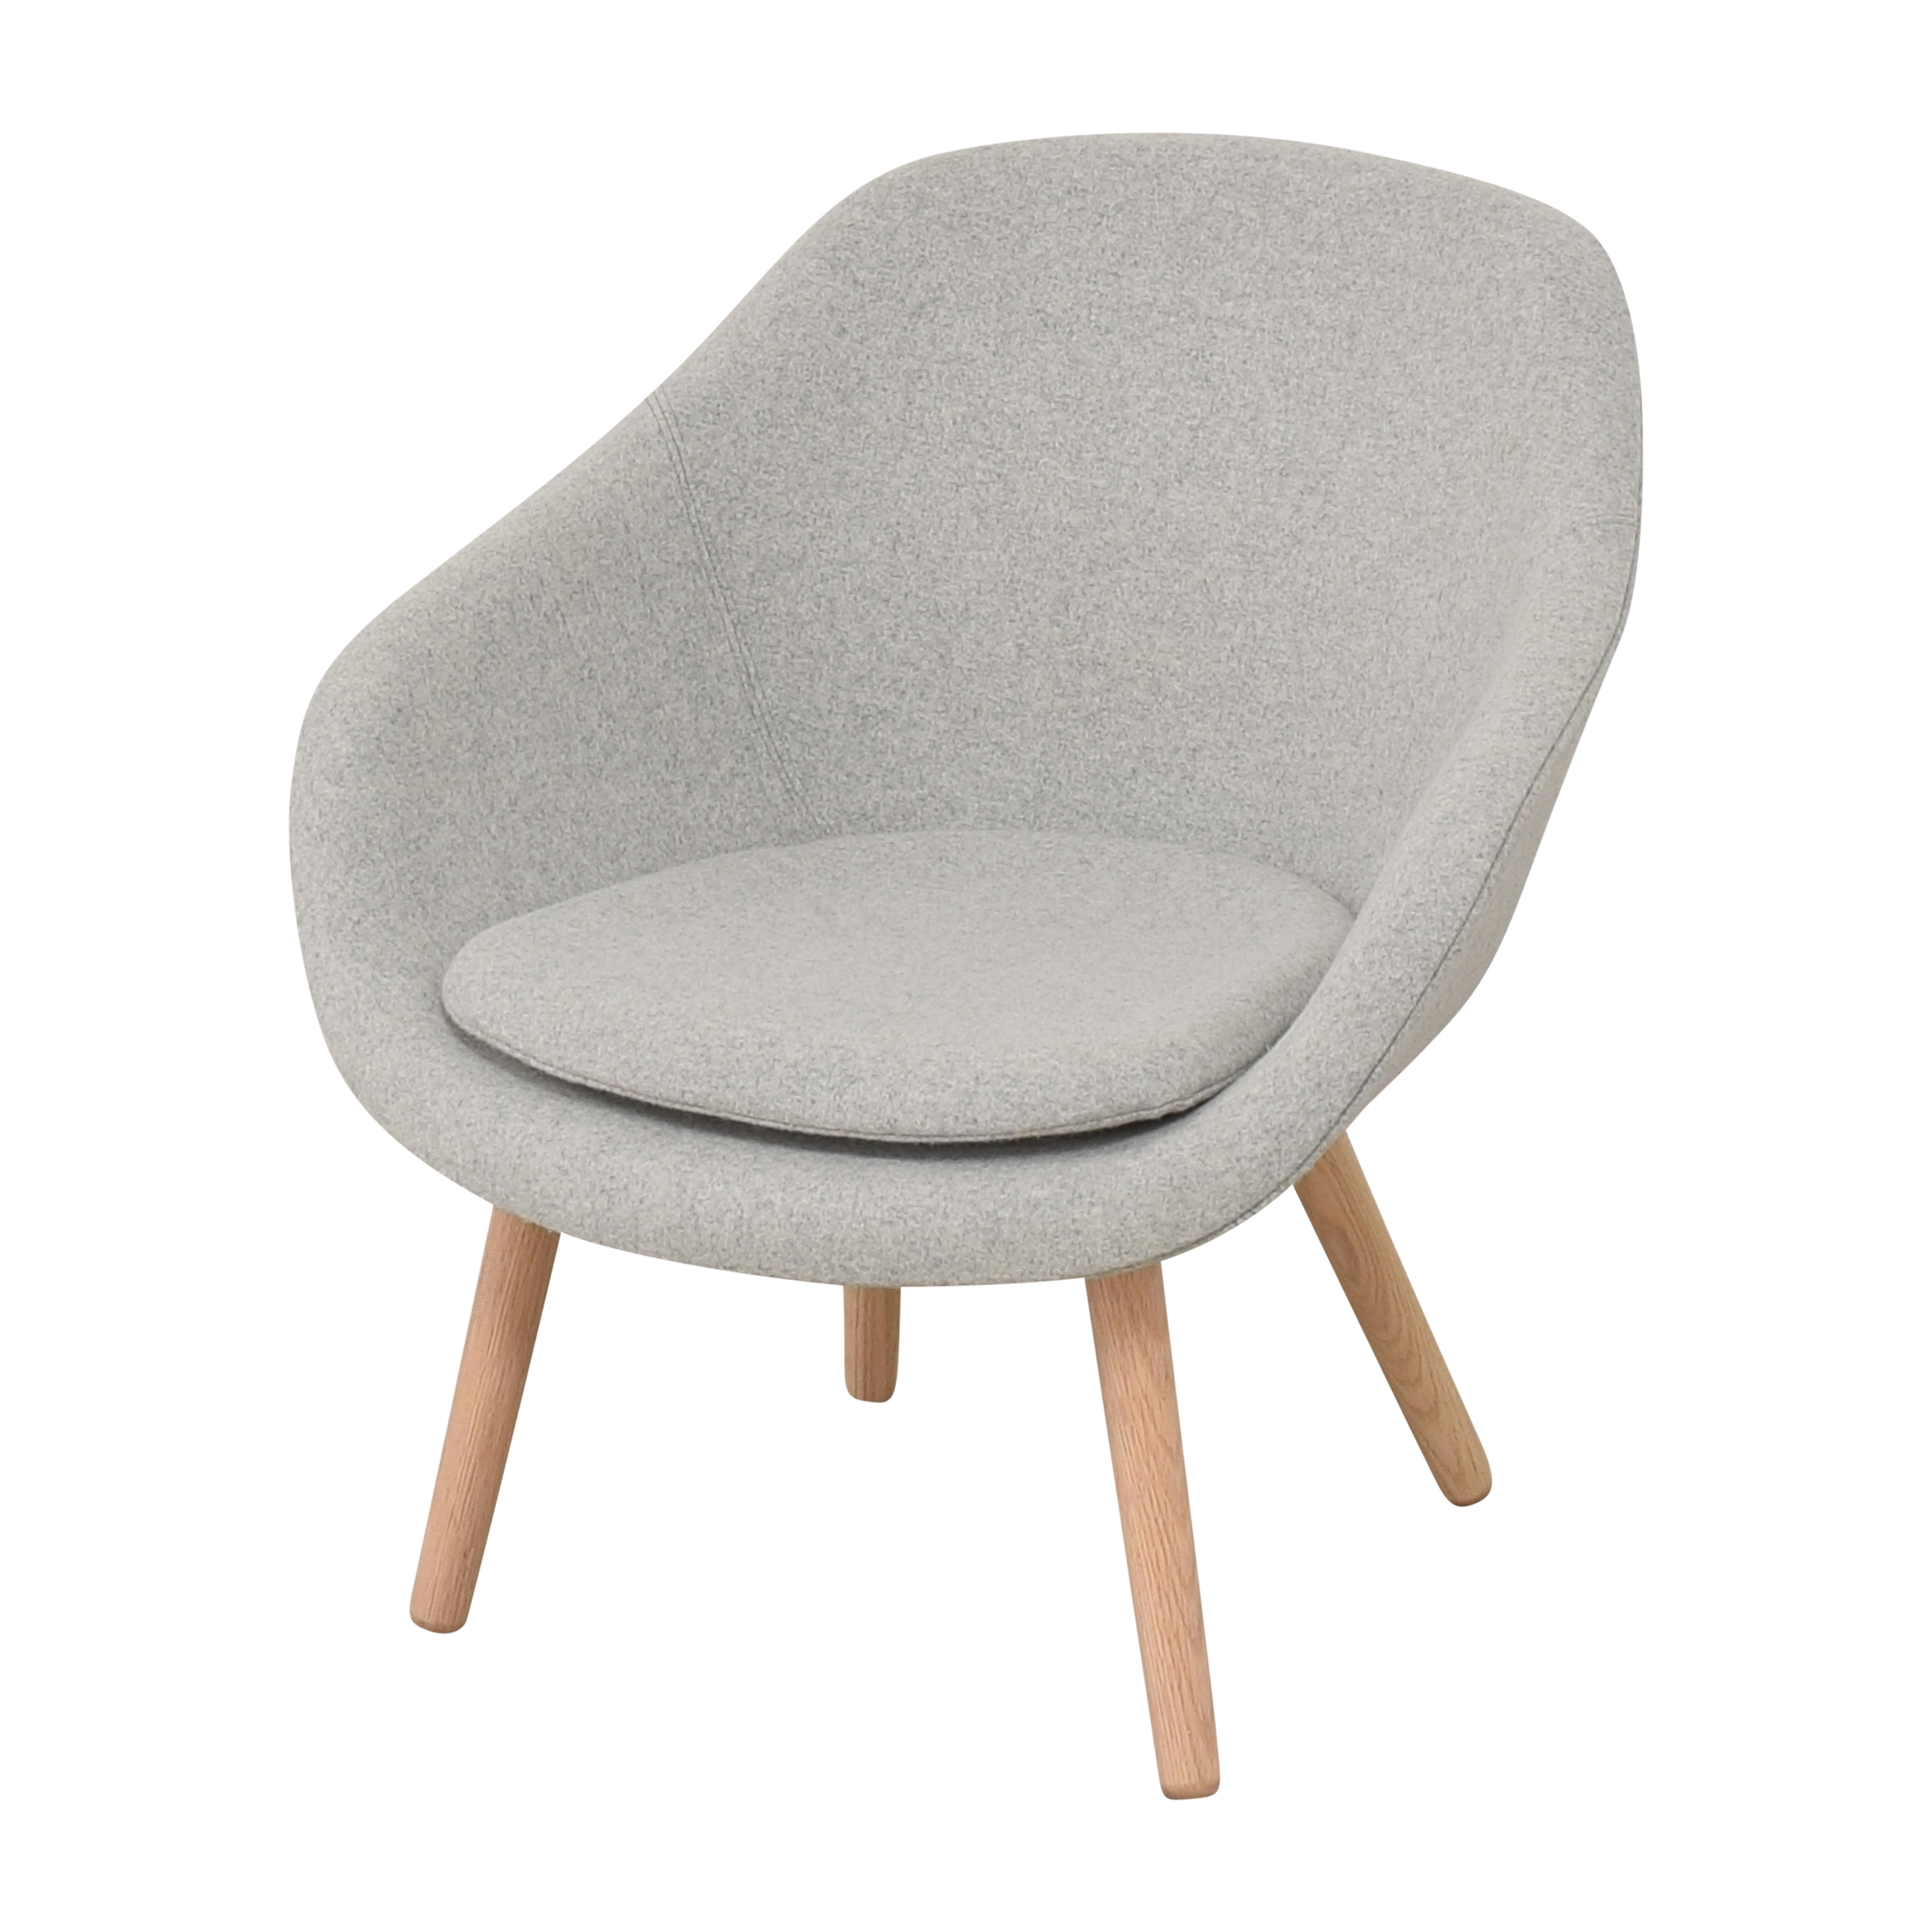 Hay Hay A Lounge 82 Arm Chair with Ottoman for sale